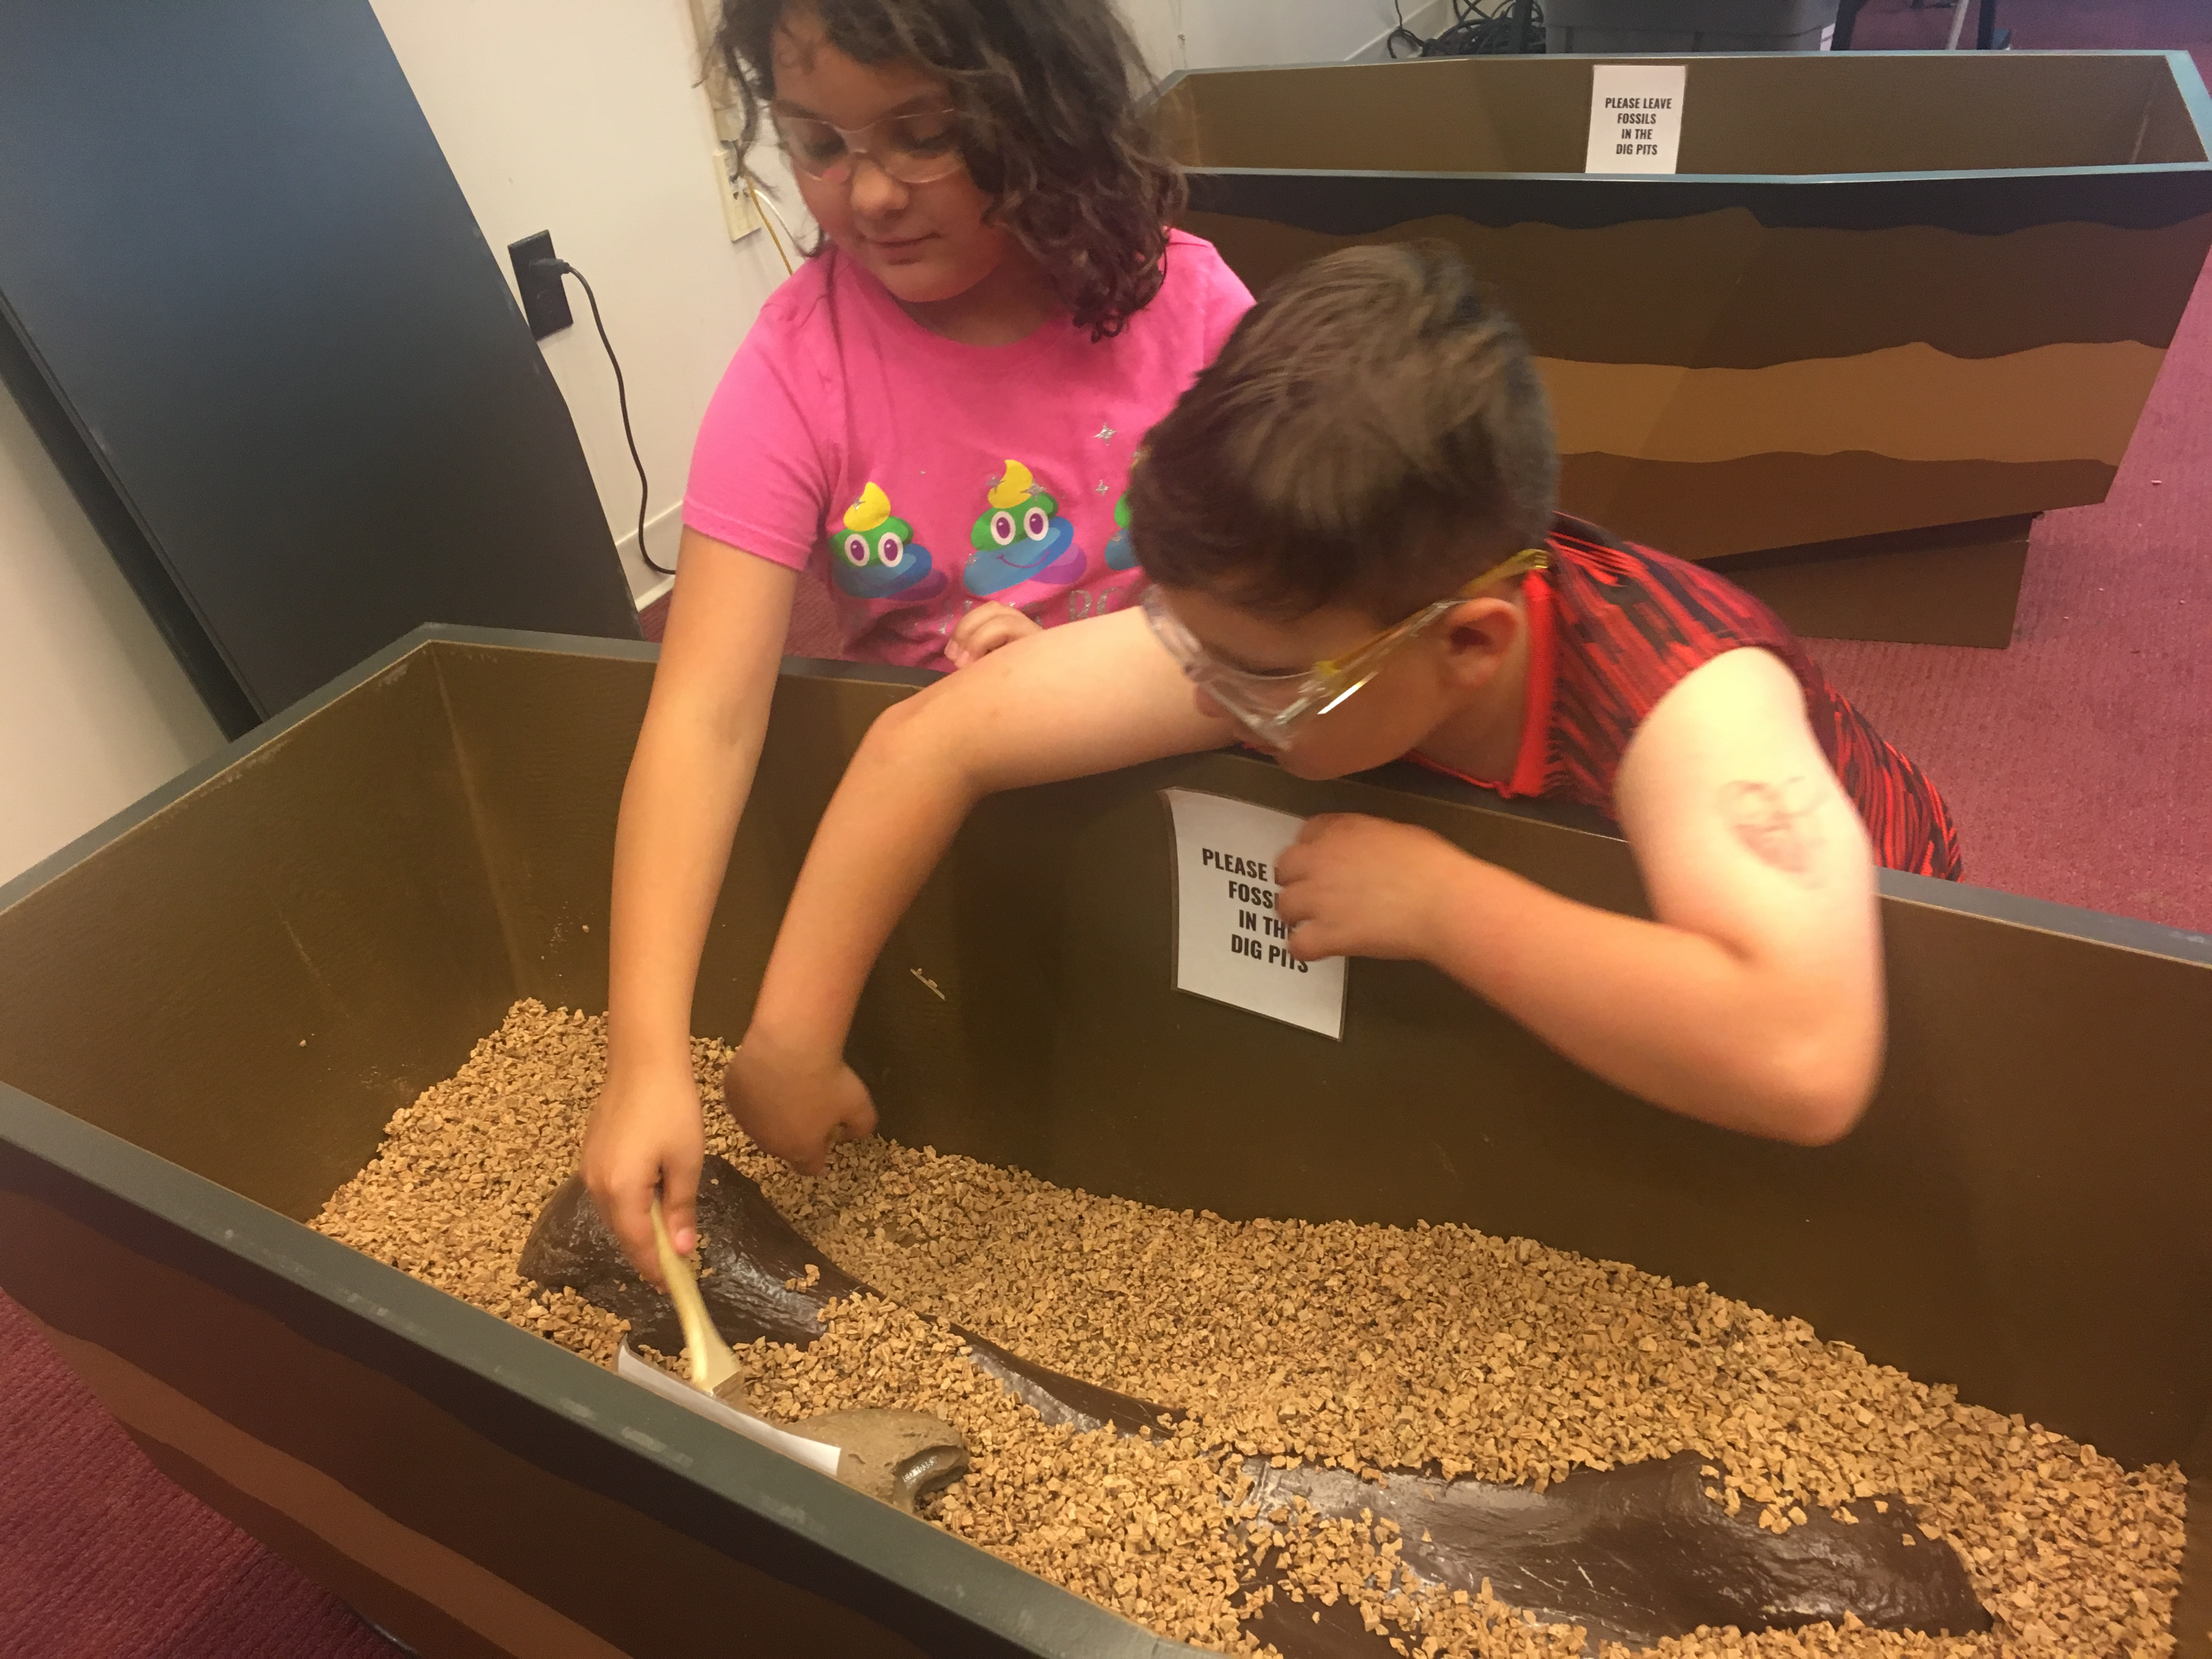 Youth patrons dig in a tub of dirt and sand for a very large fossilized bone.